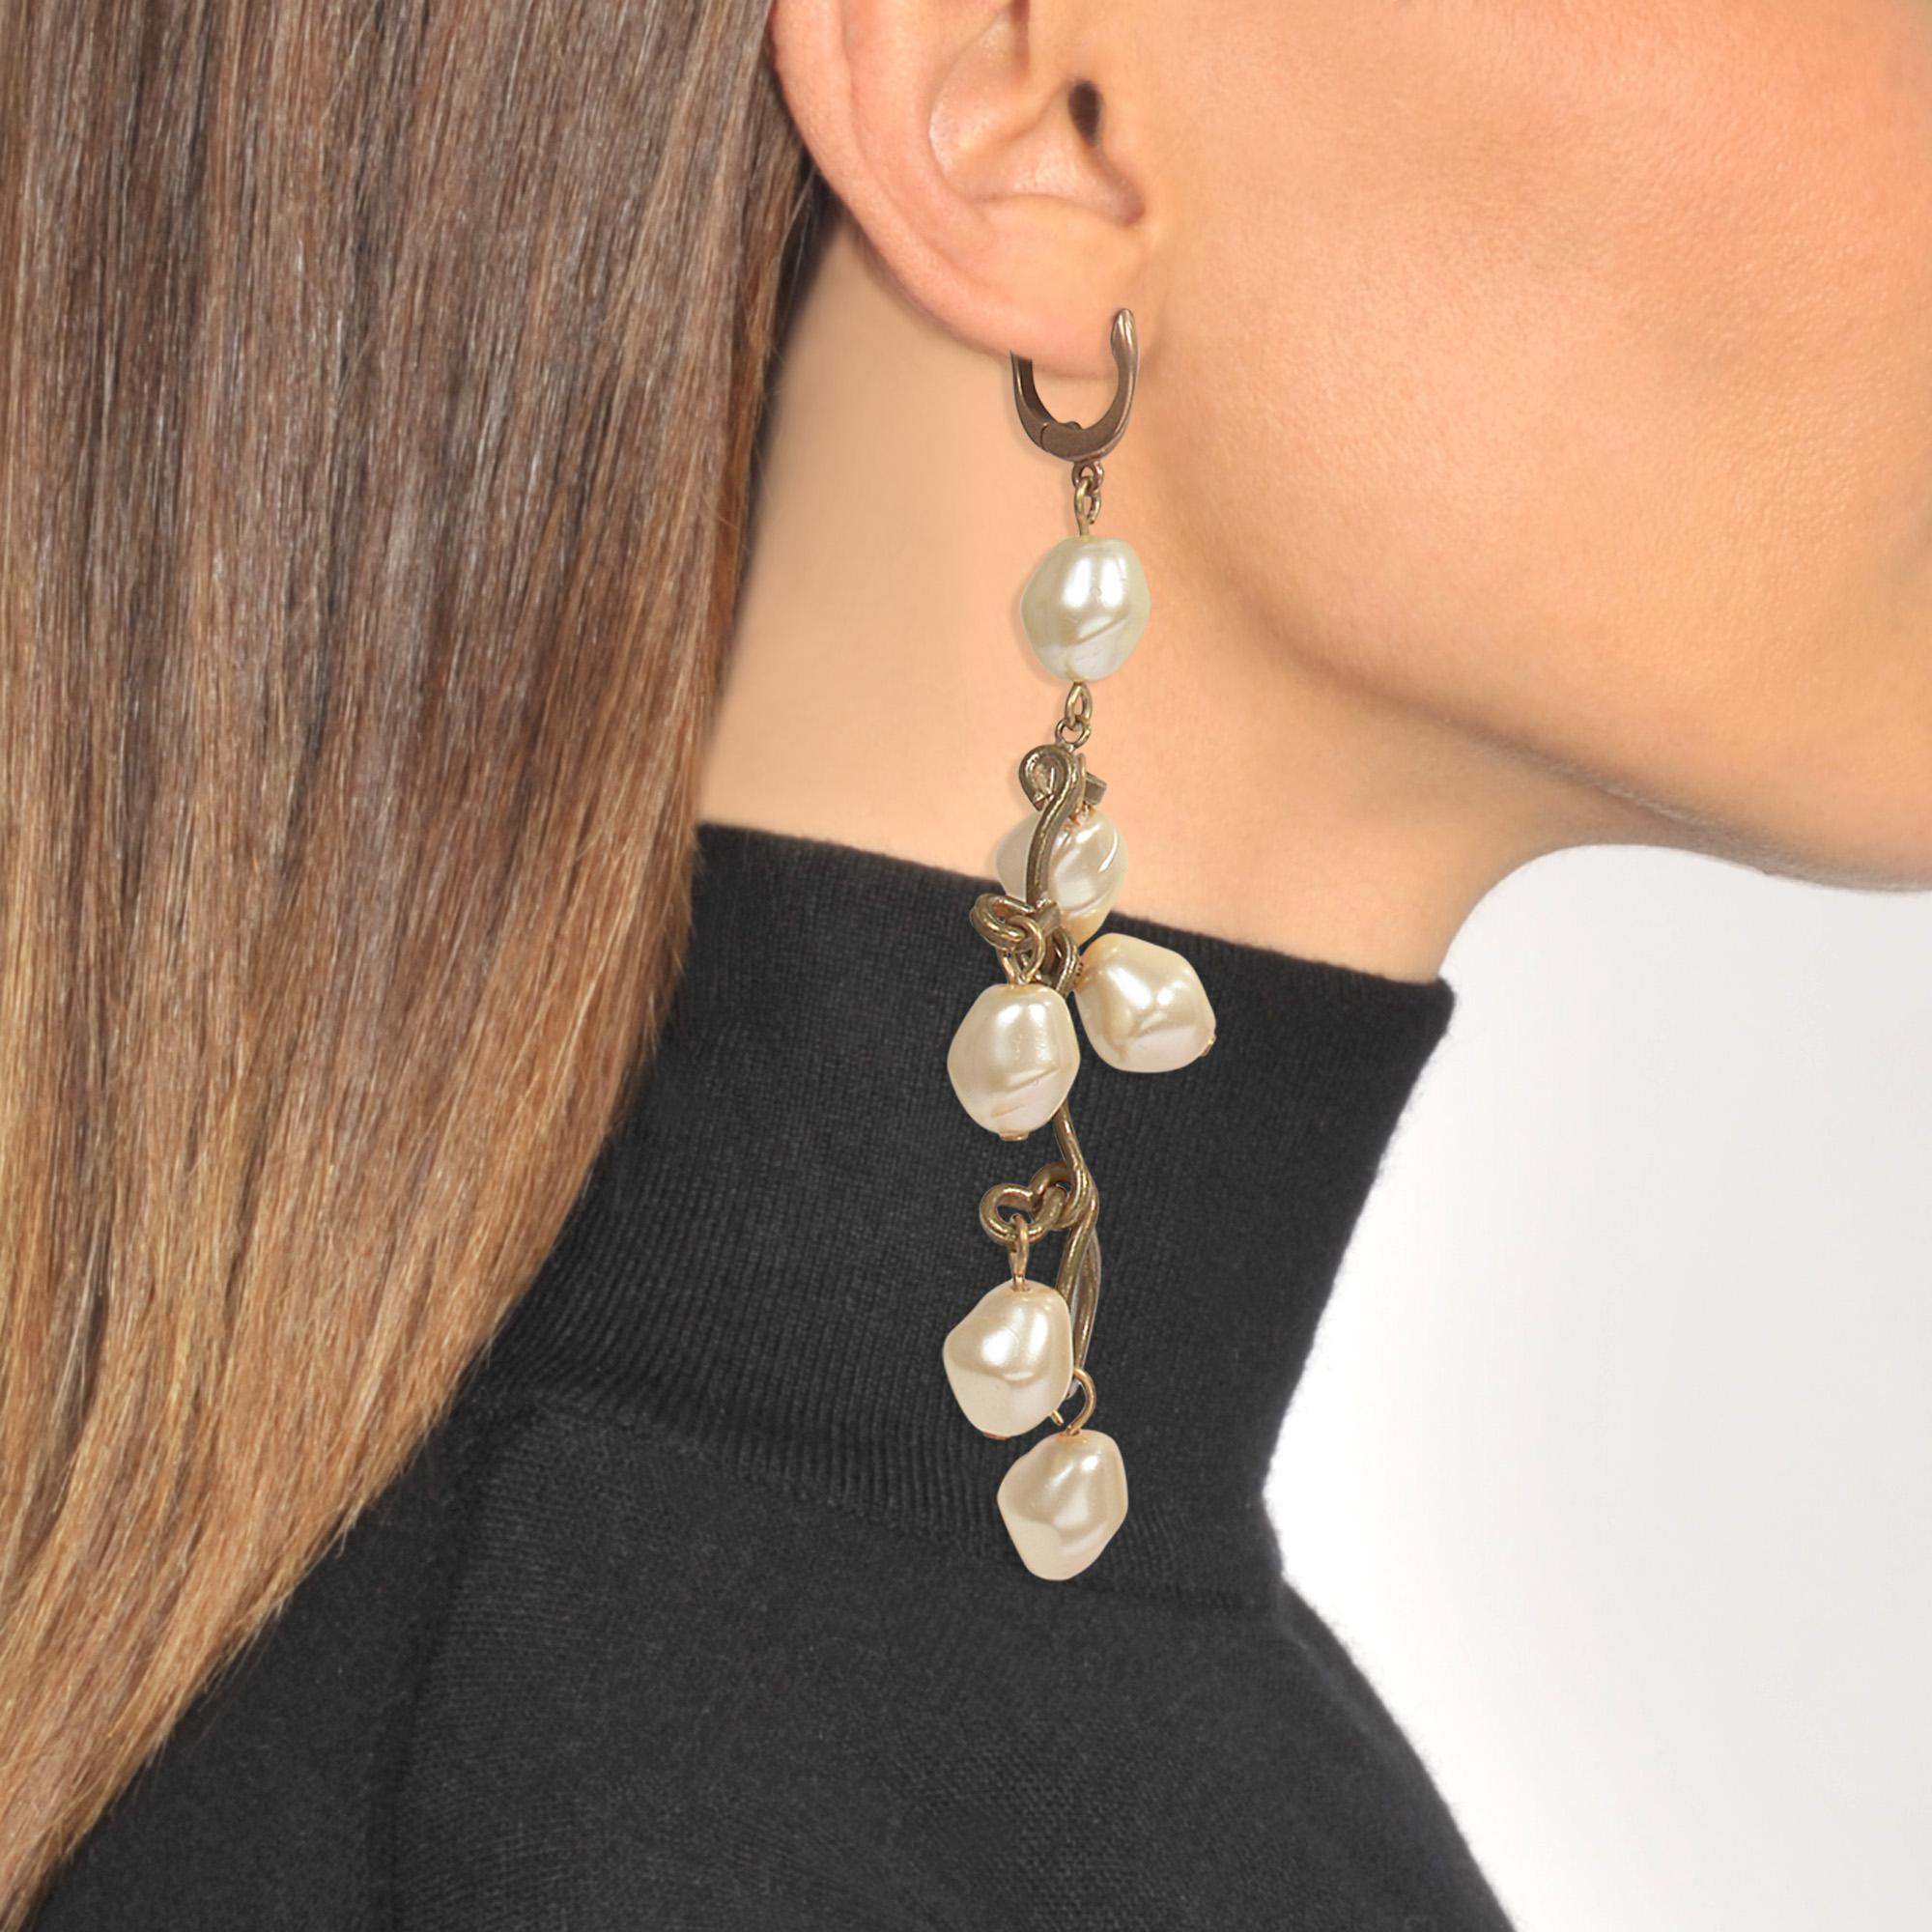 Pearls Mono Earring in Lilly White Metal Marni PJSfSOqv0u